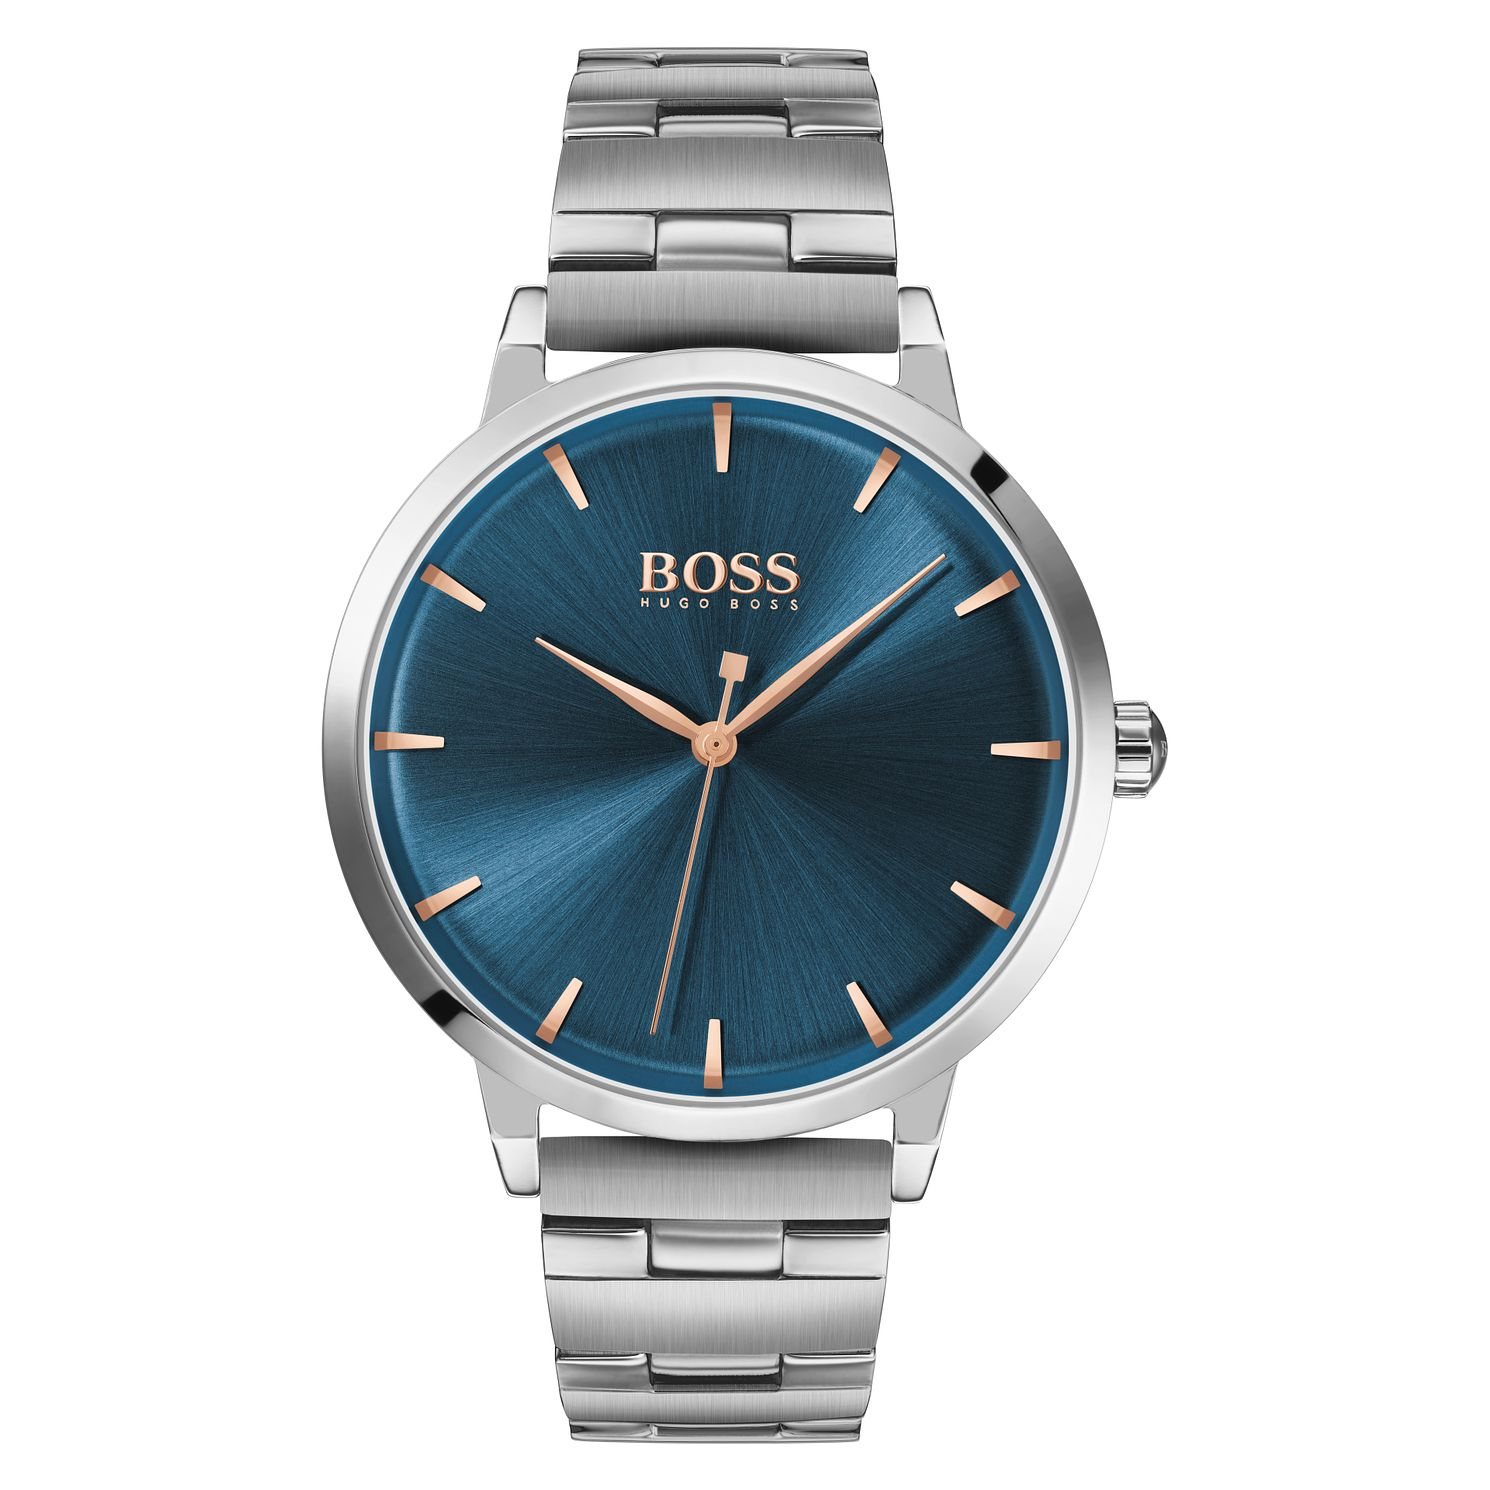 BOSS Marina Ladies' Stainless Steel Bracelet Watch - Product number 2774542